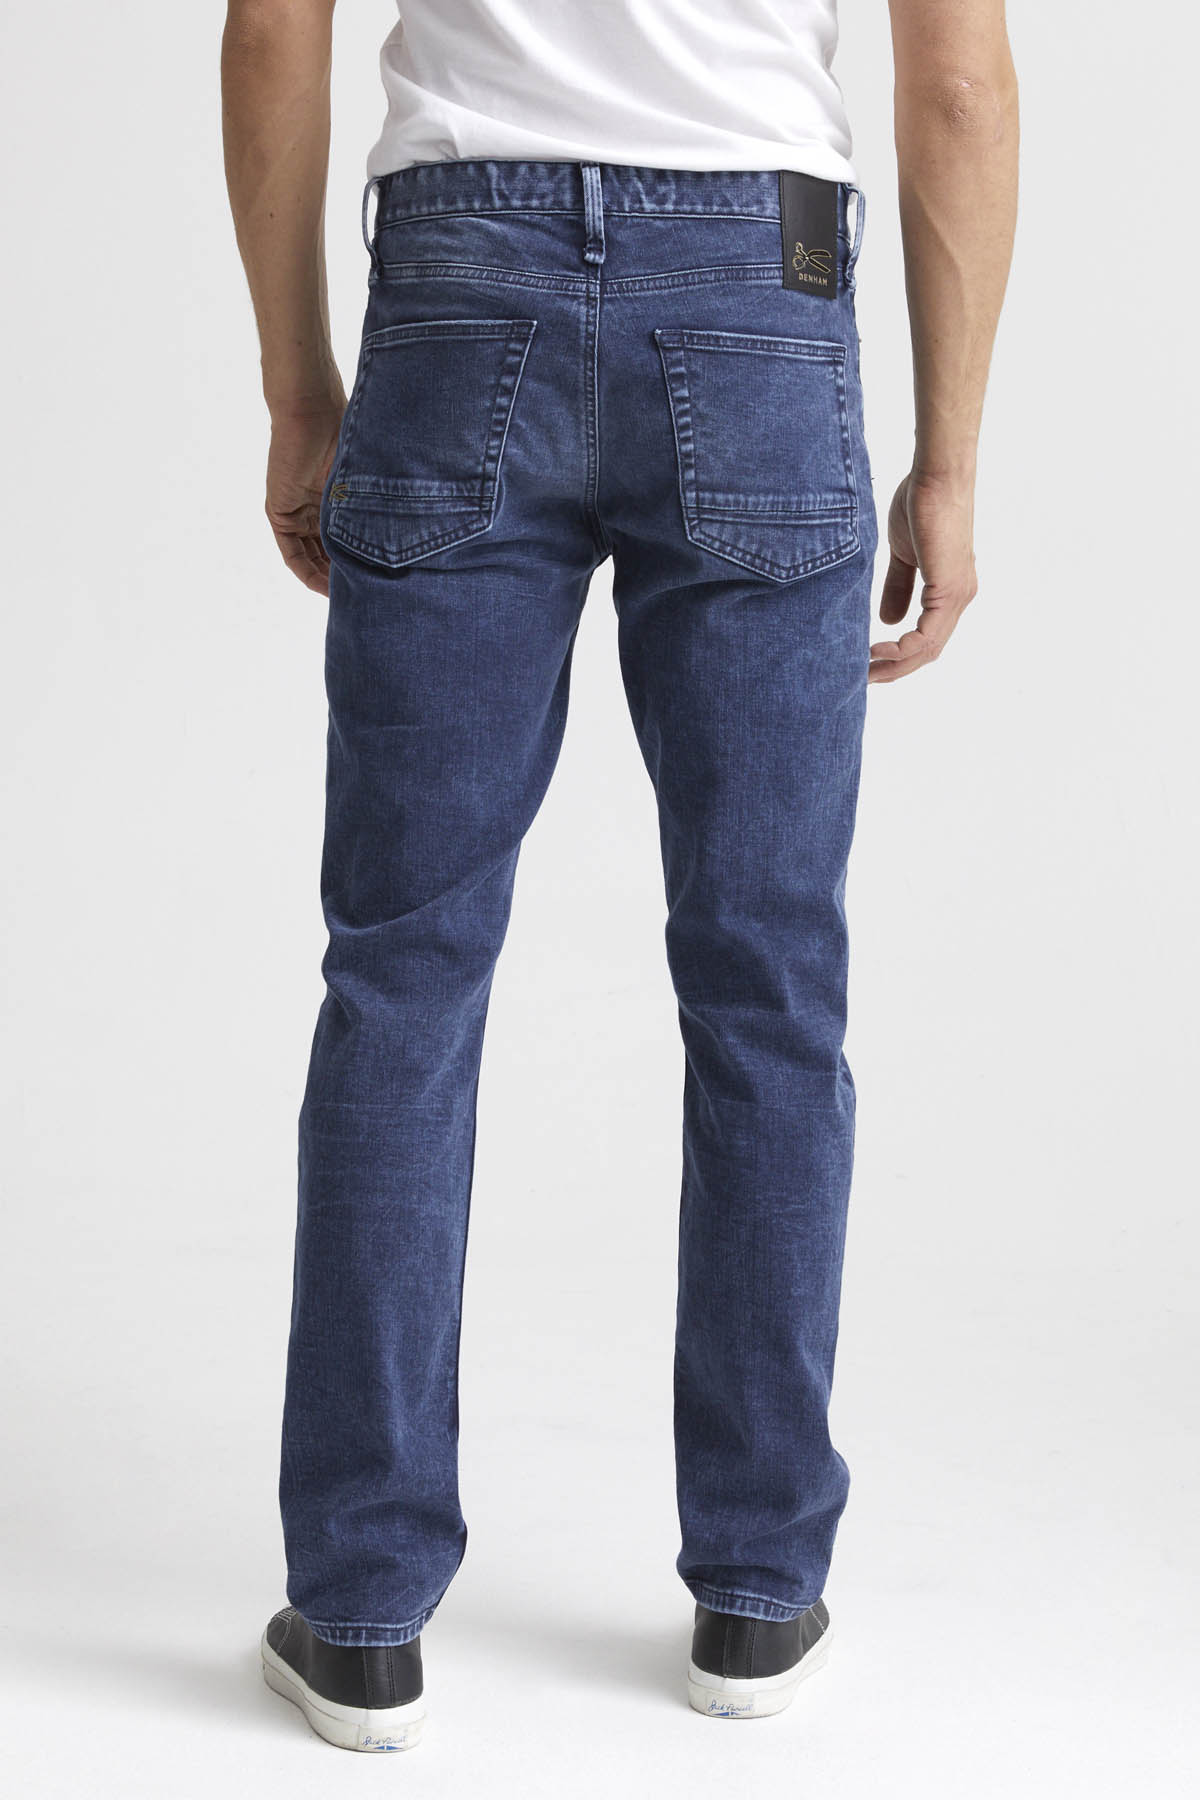 Razor - Slim Fit Jeans - Detail